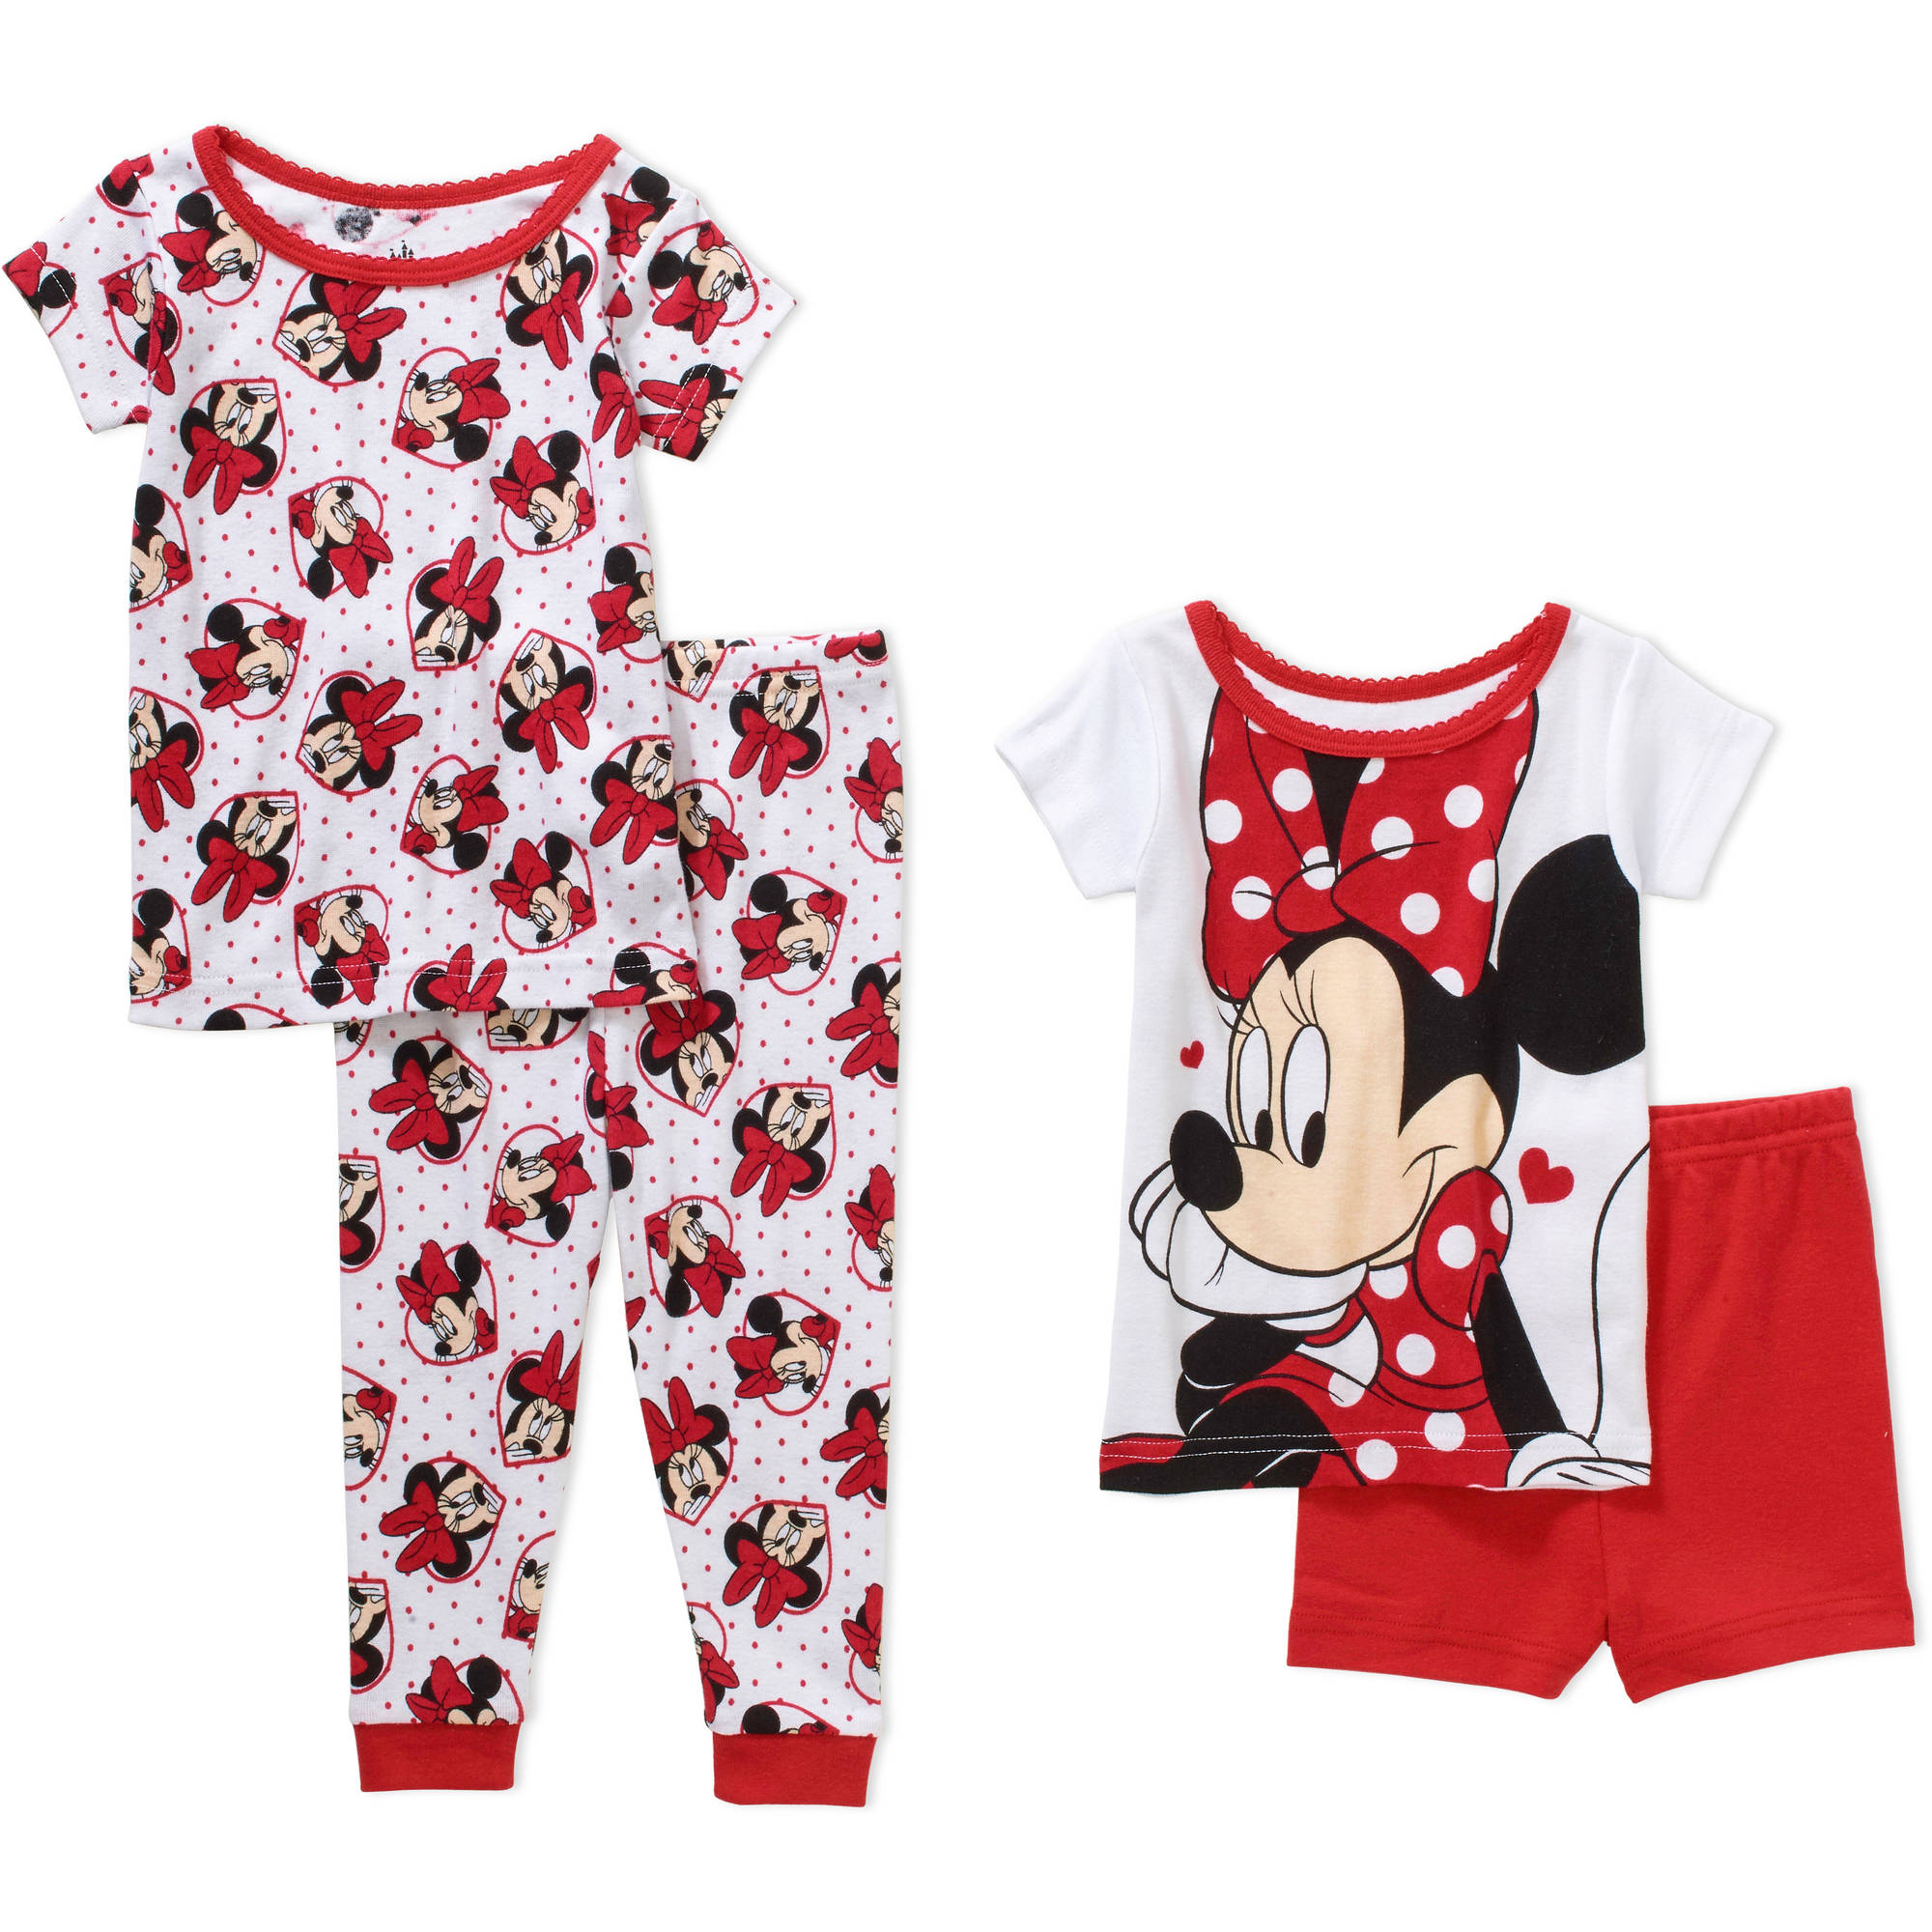 Minnie Mouse Infant Baby Girl' Mix n' Match Short Sleeve Cotton Tight Fit Pajamas, 4-Pieces